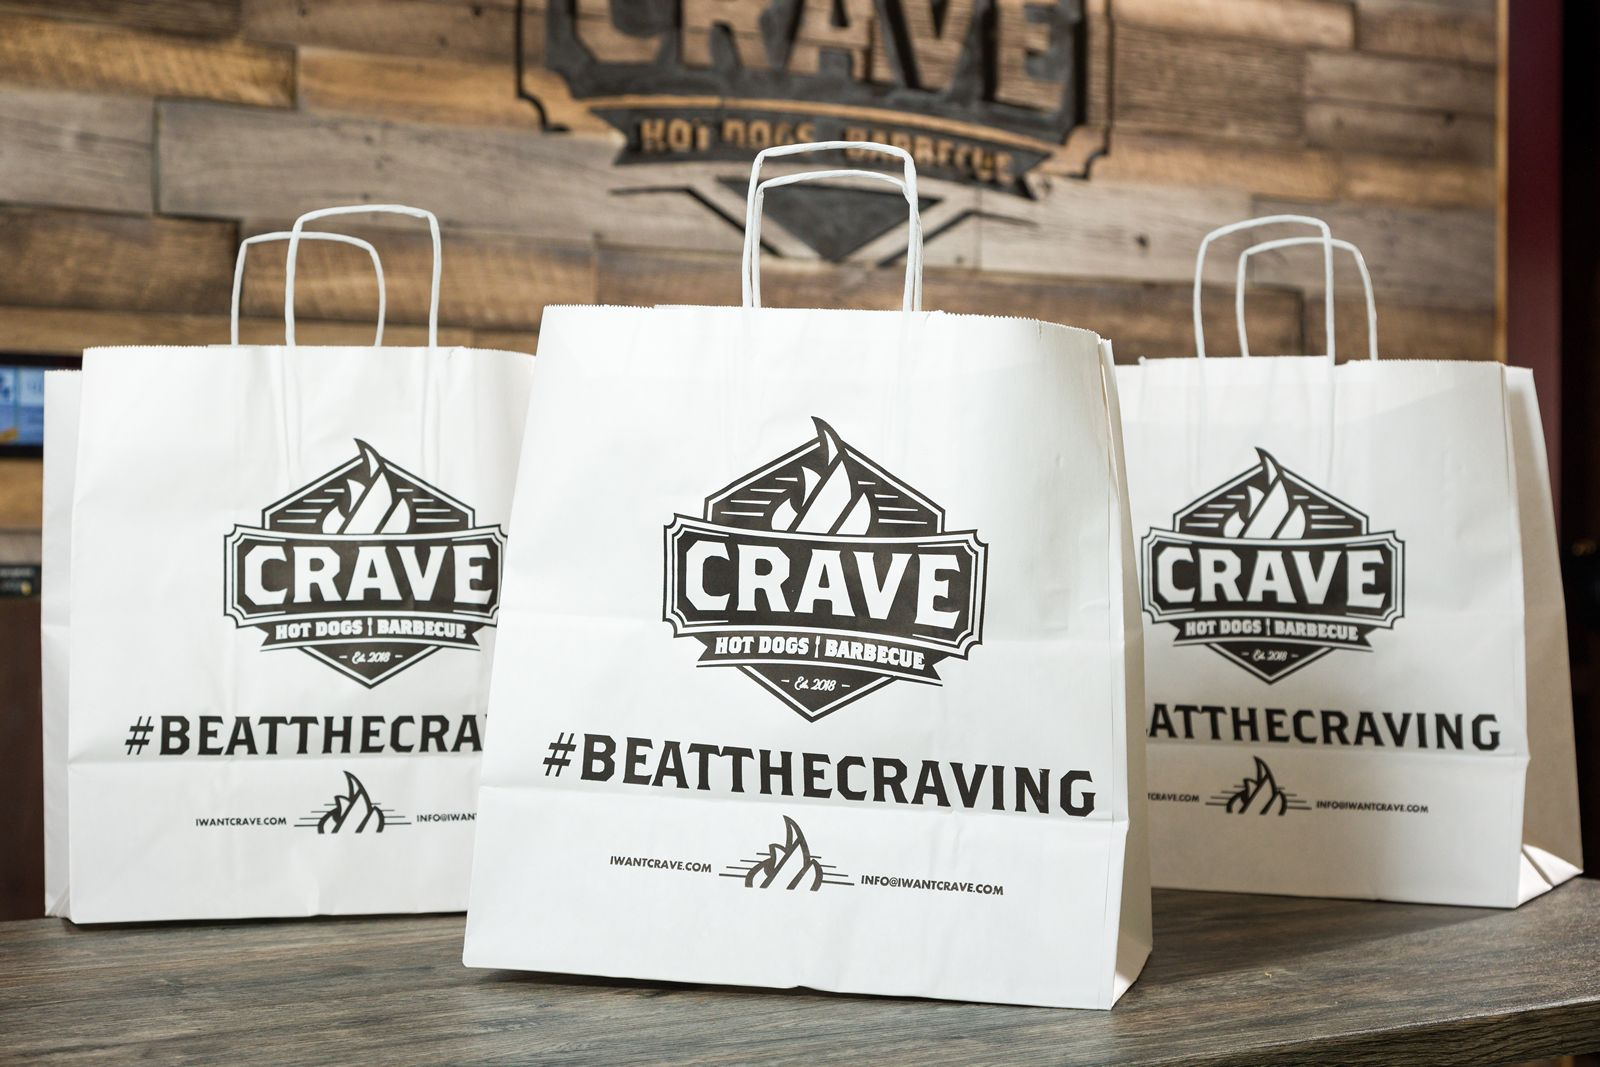 Crave Hot Dogs and BBQ Makes Grand Entrance in California Market With Stores and Trucks